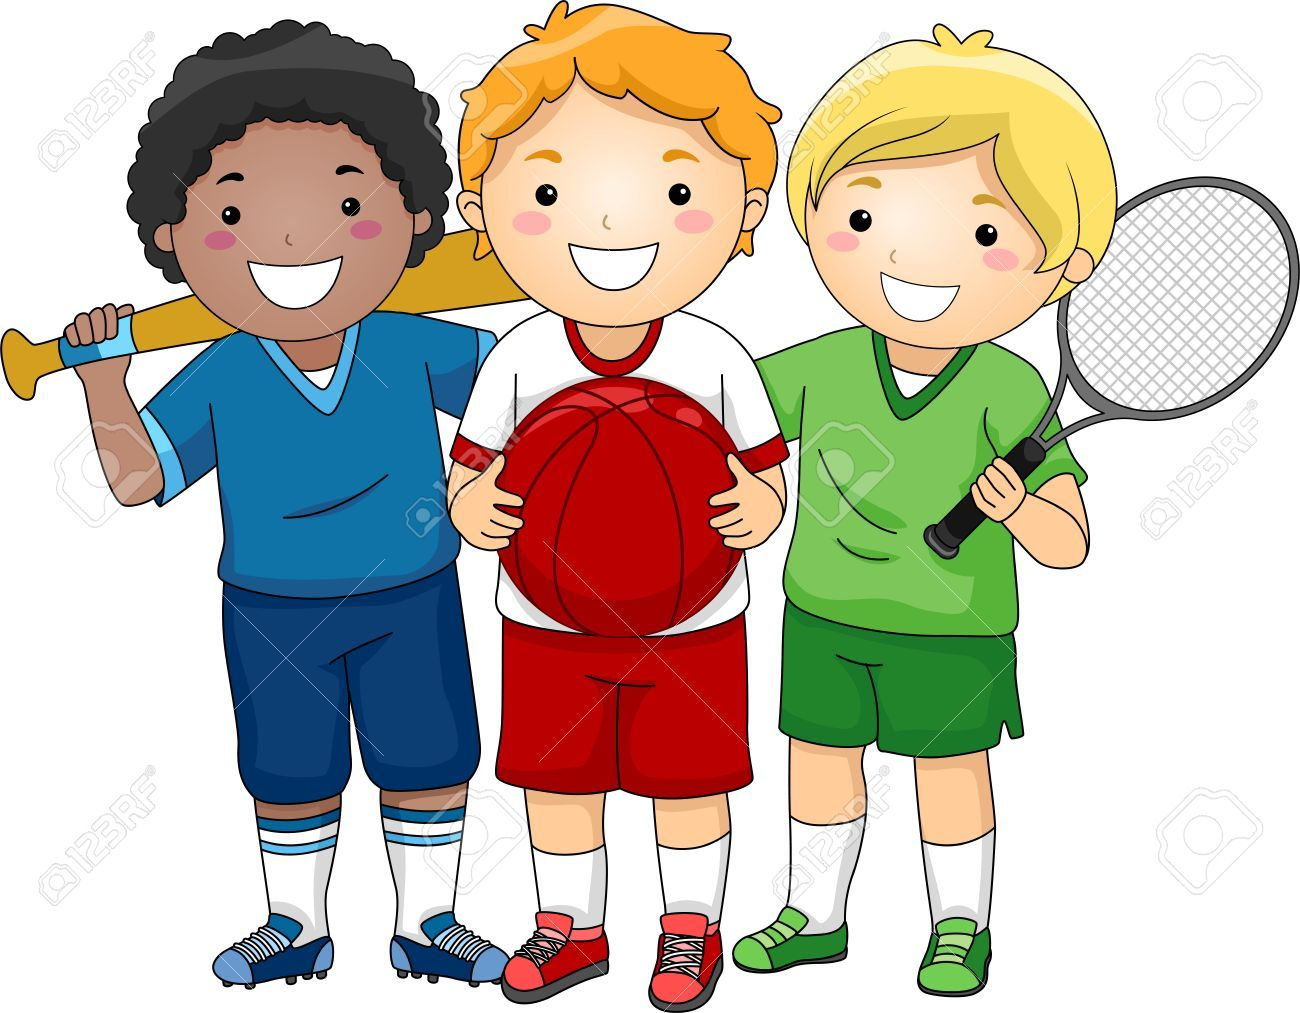 sports clipart Yahoo Image Search Results Different sports